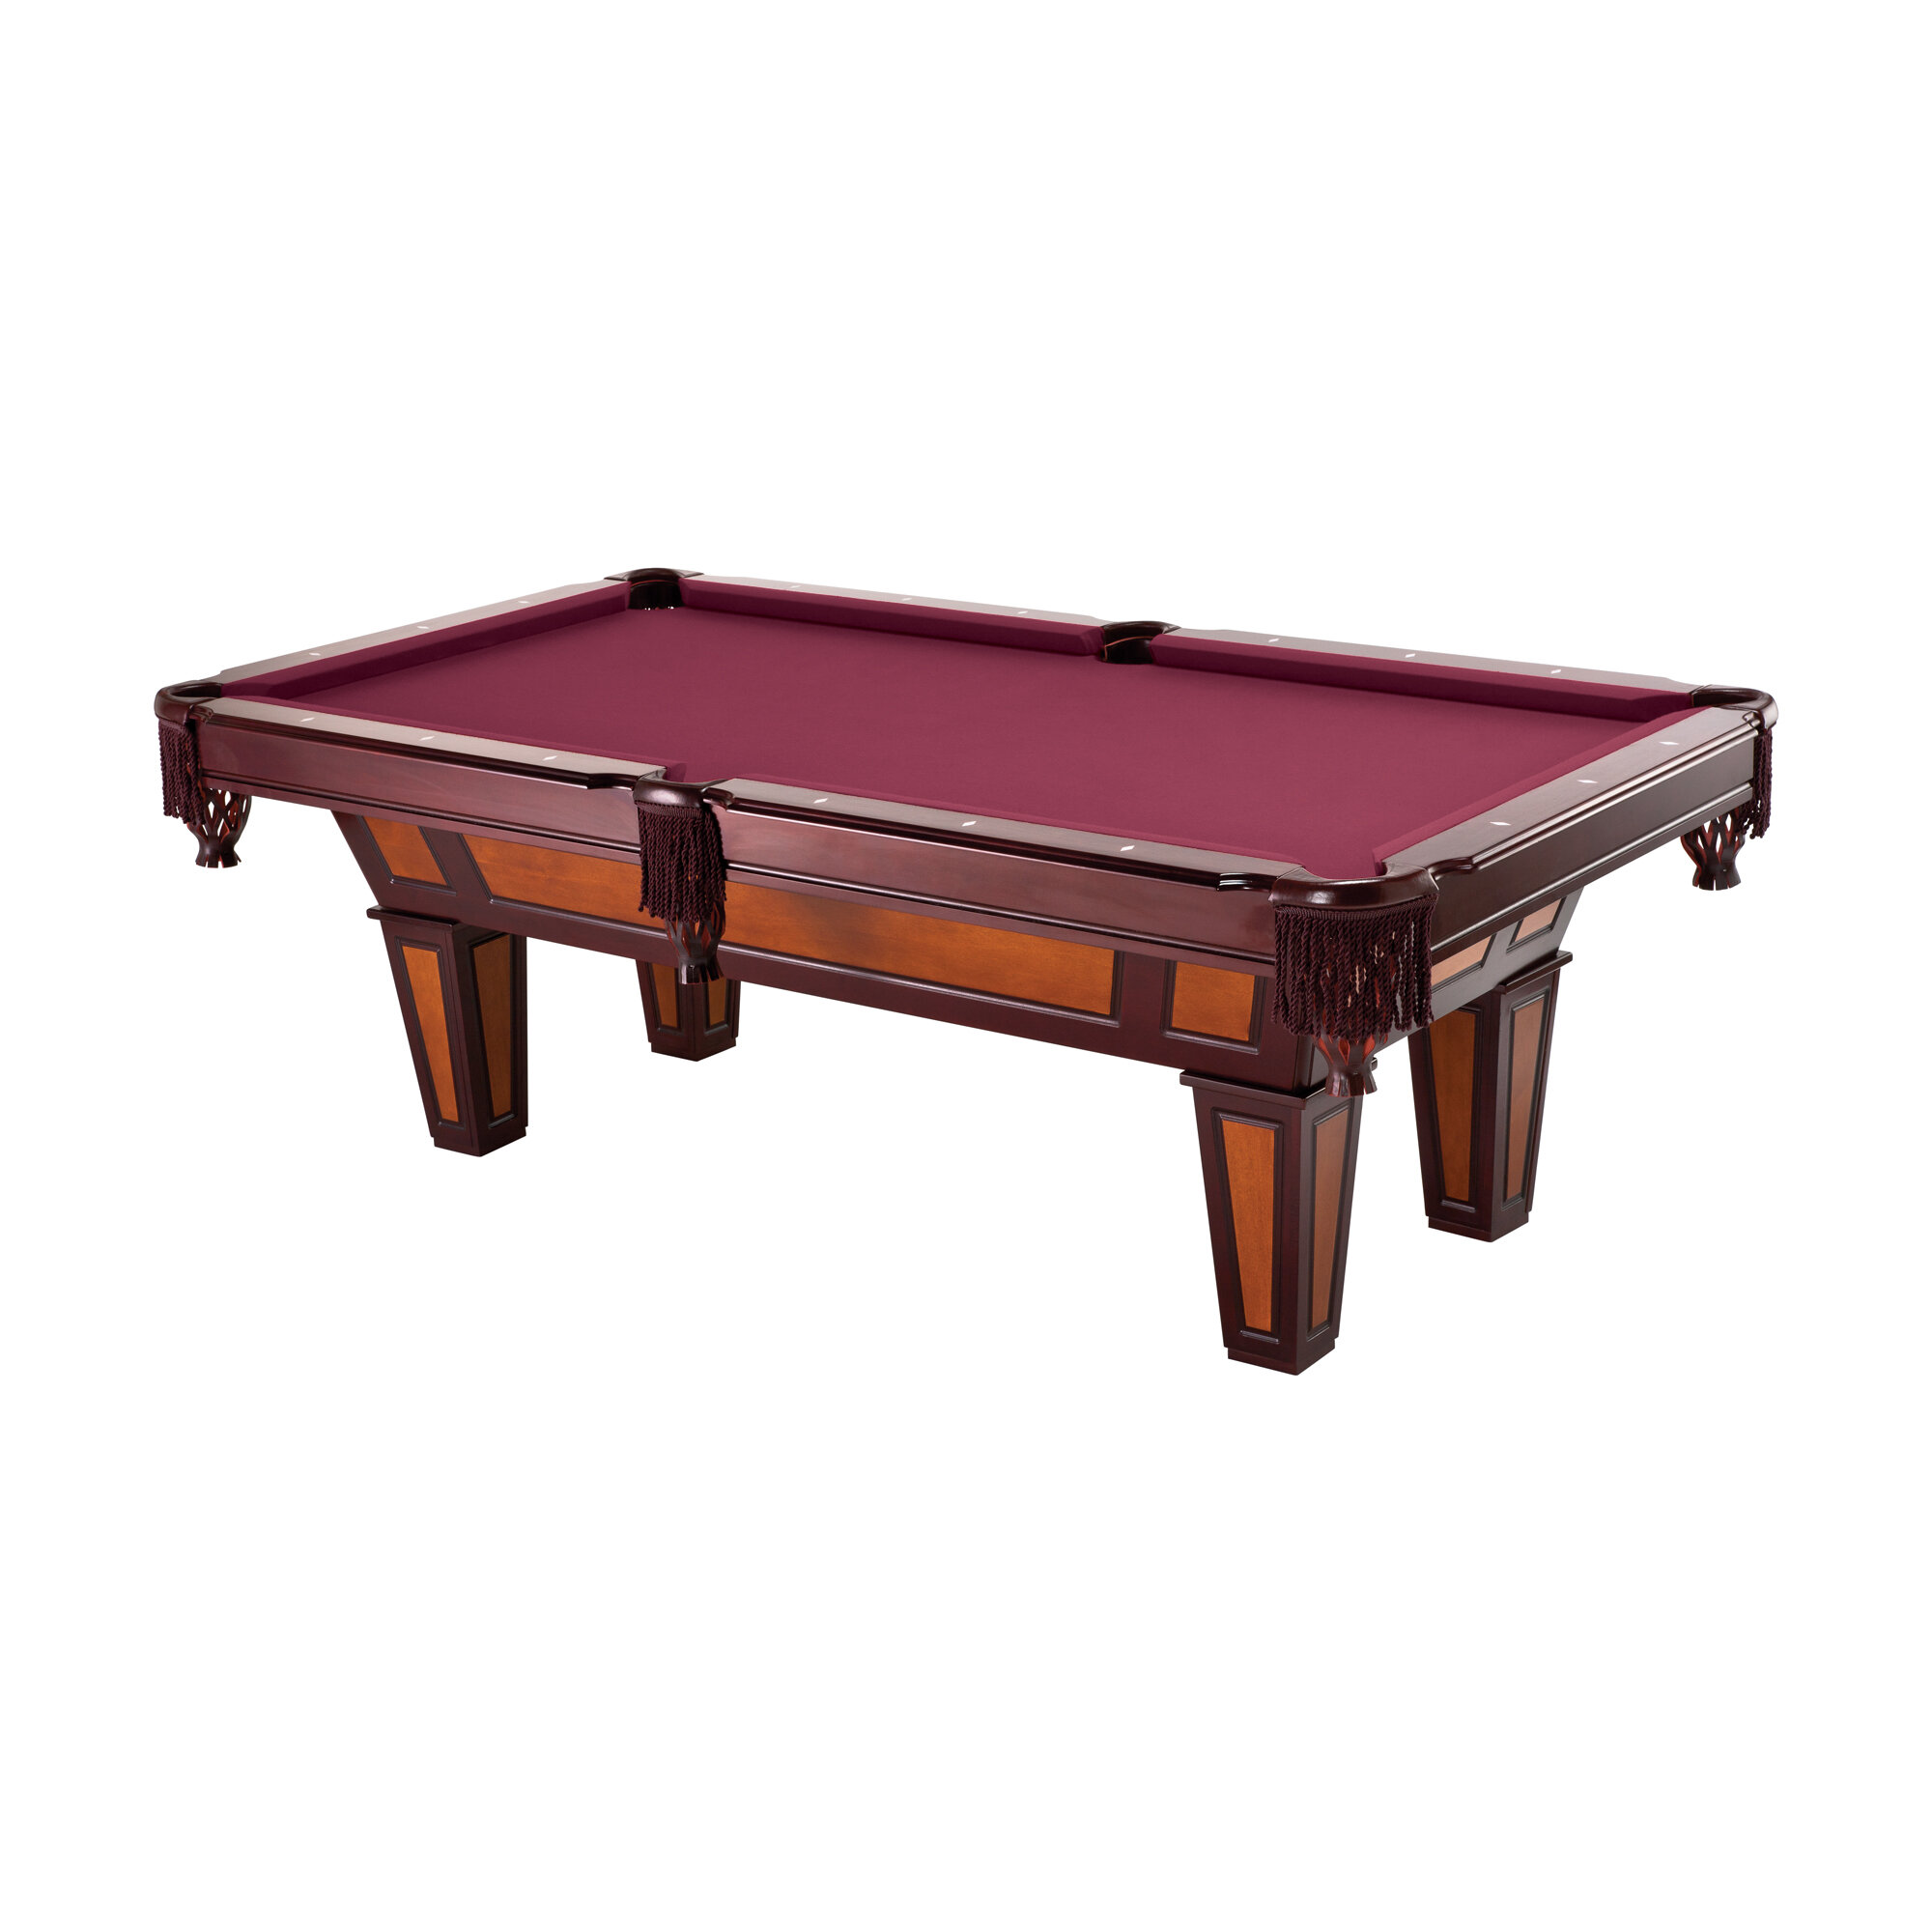 tables game barton billiard commercial mcgill table tablepic pool snooker colonial accessories